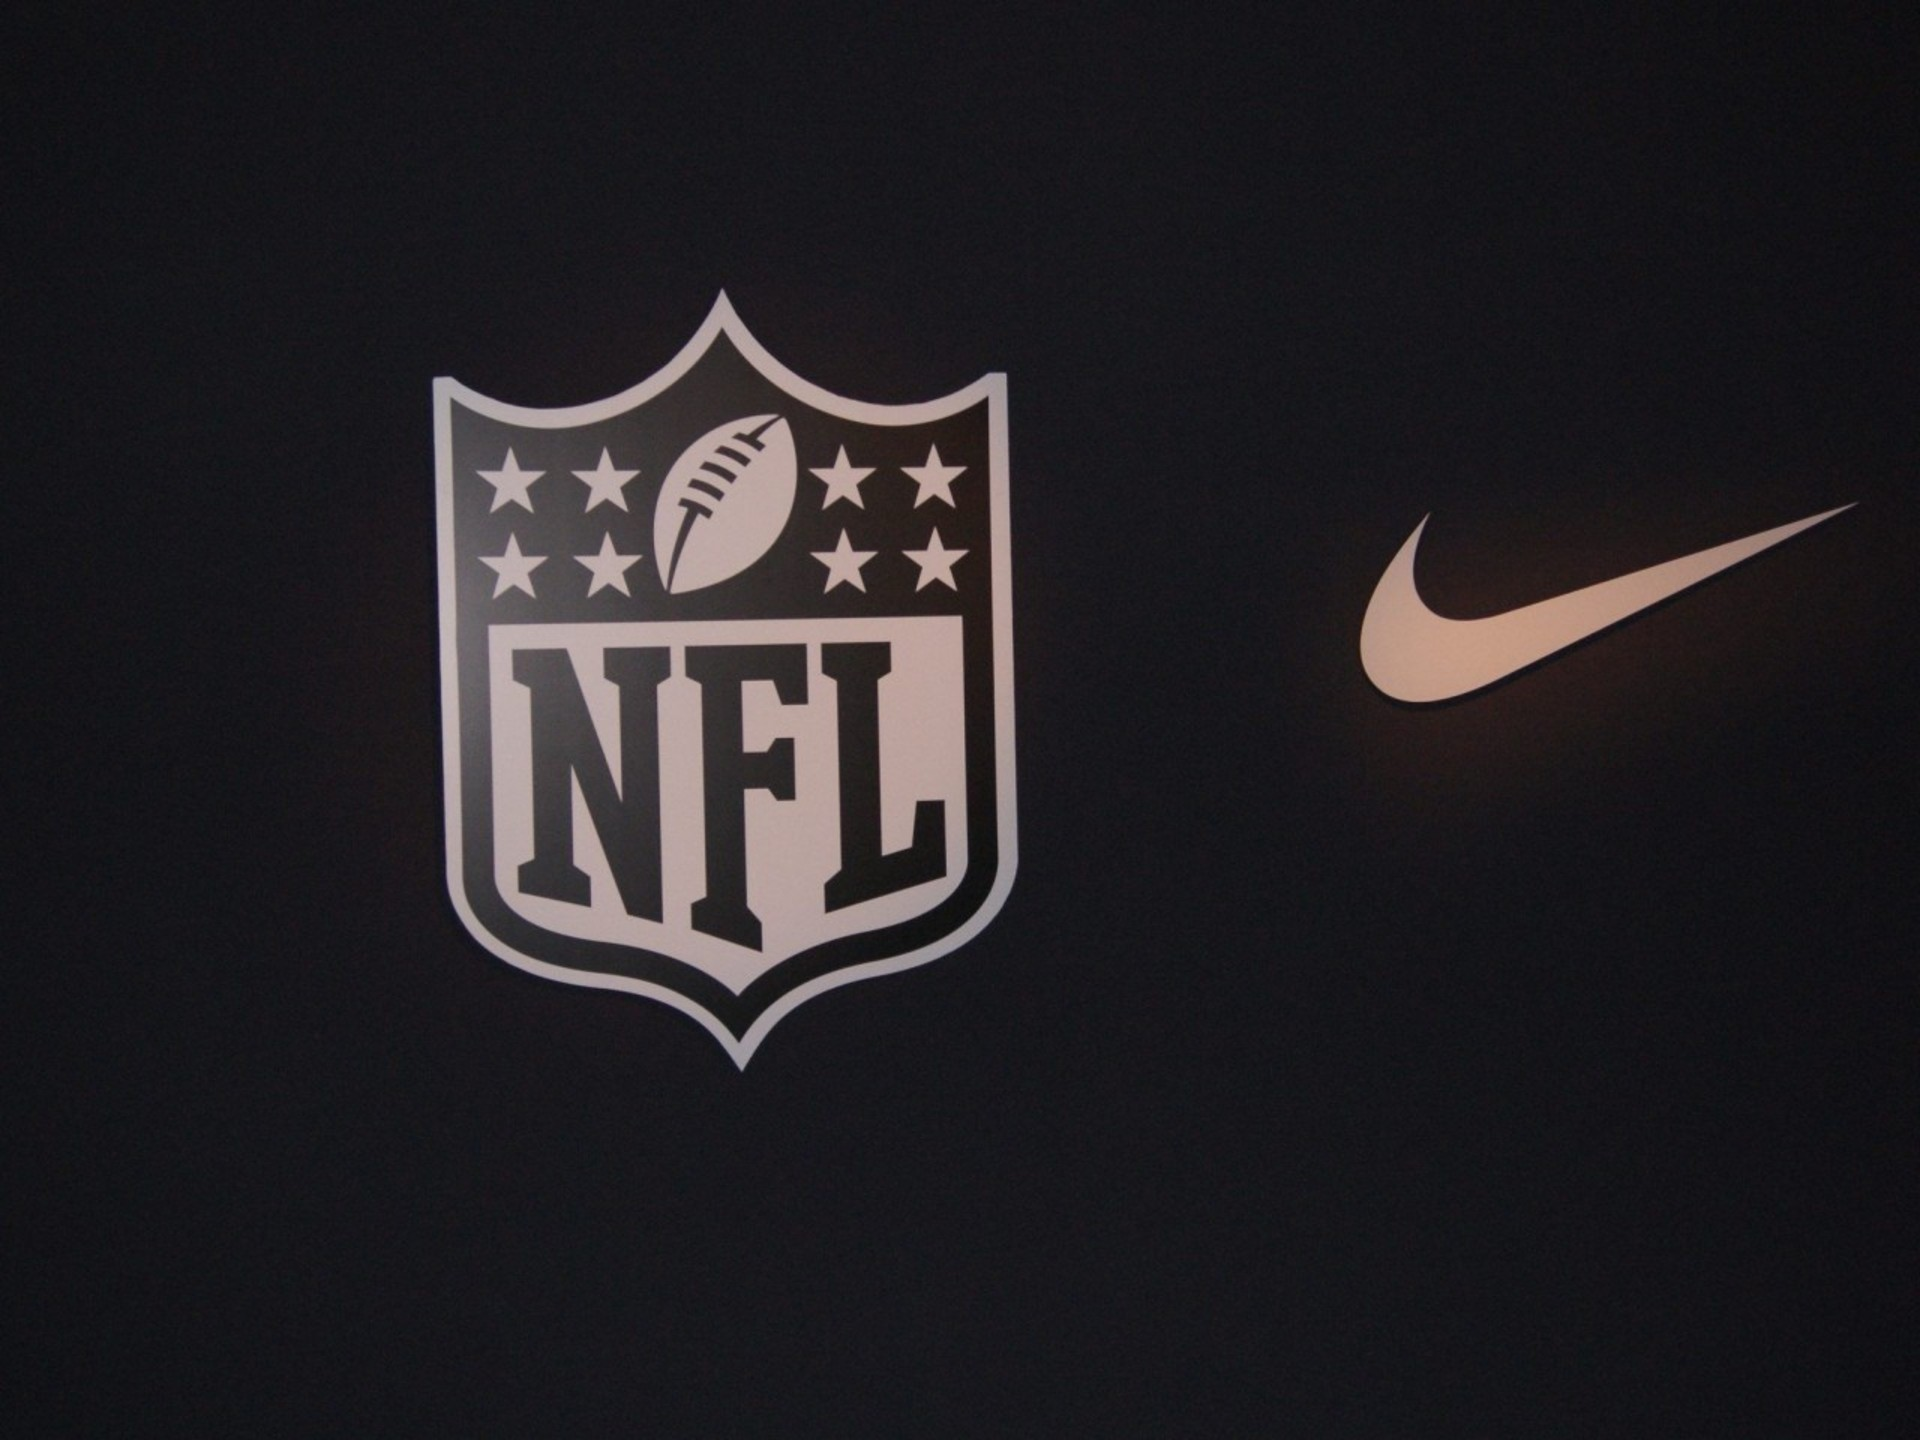 1920x1440 nike nfl football wallpaper categories sports wallpaper